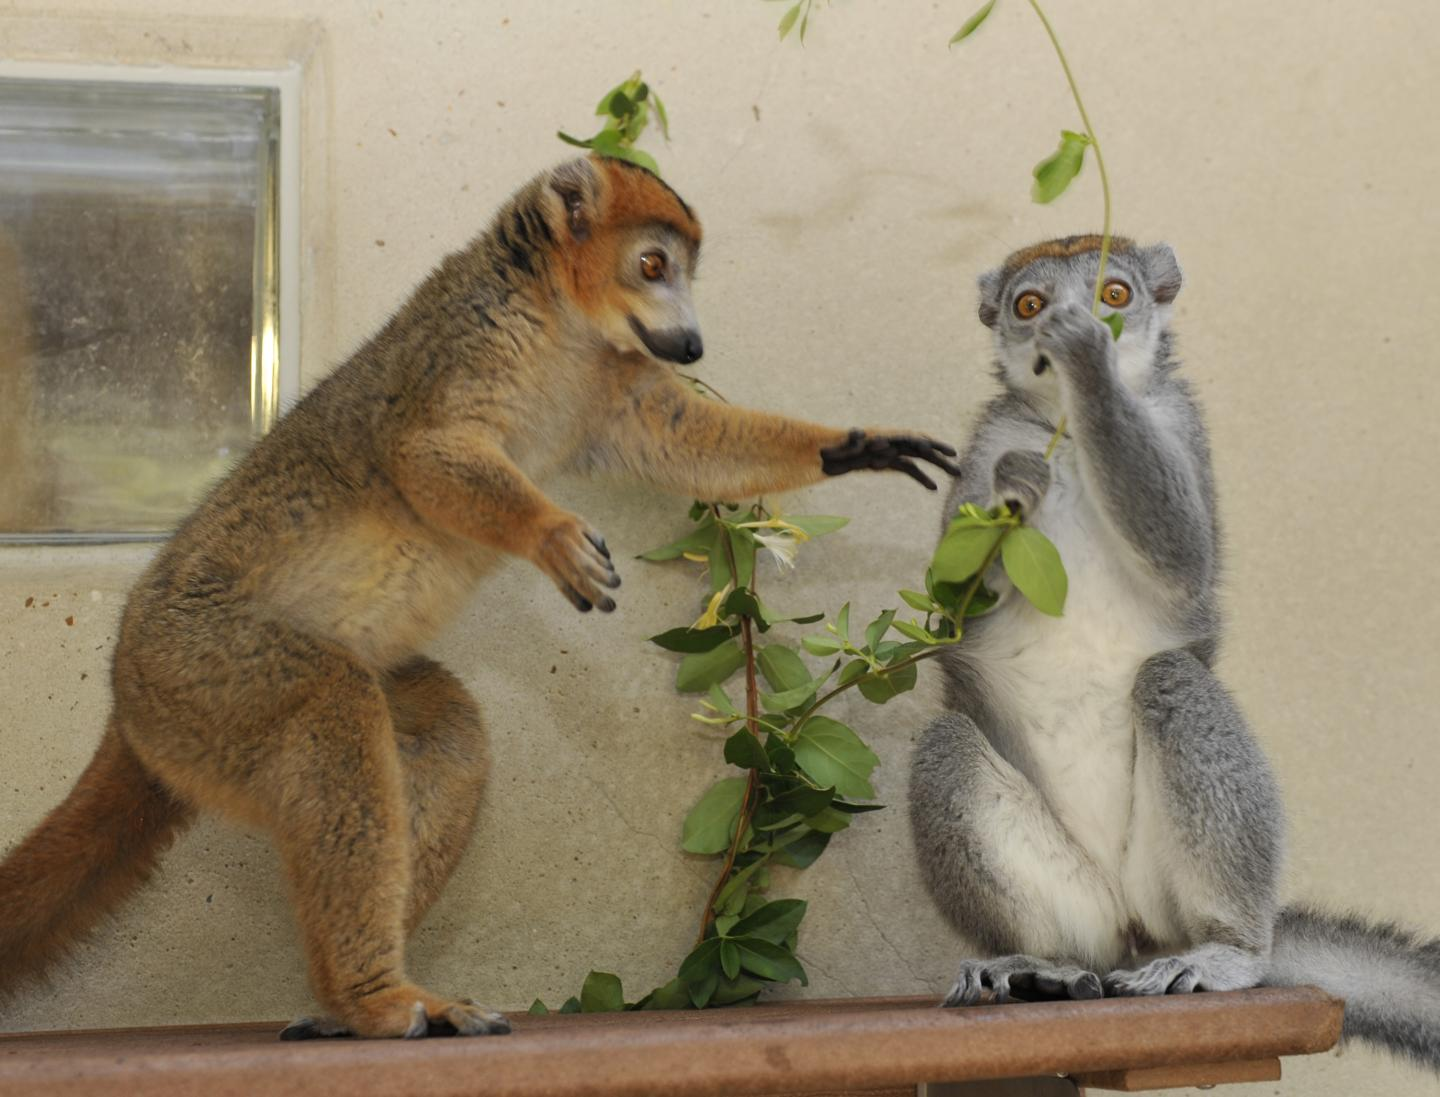 Lemur Females Rule - Because They Have Male Hormones?